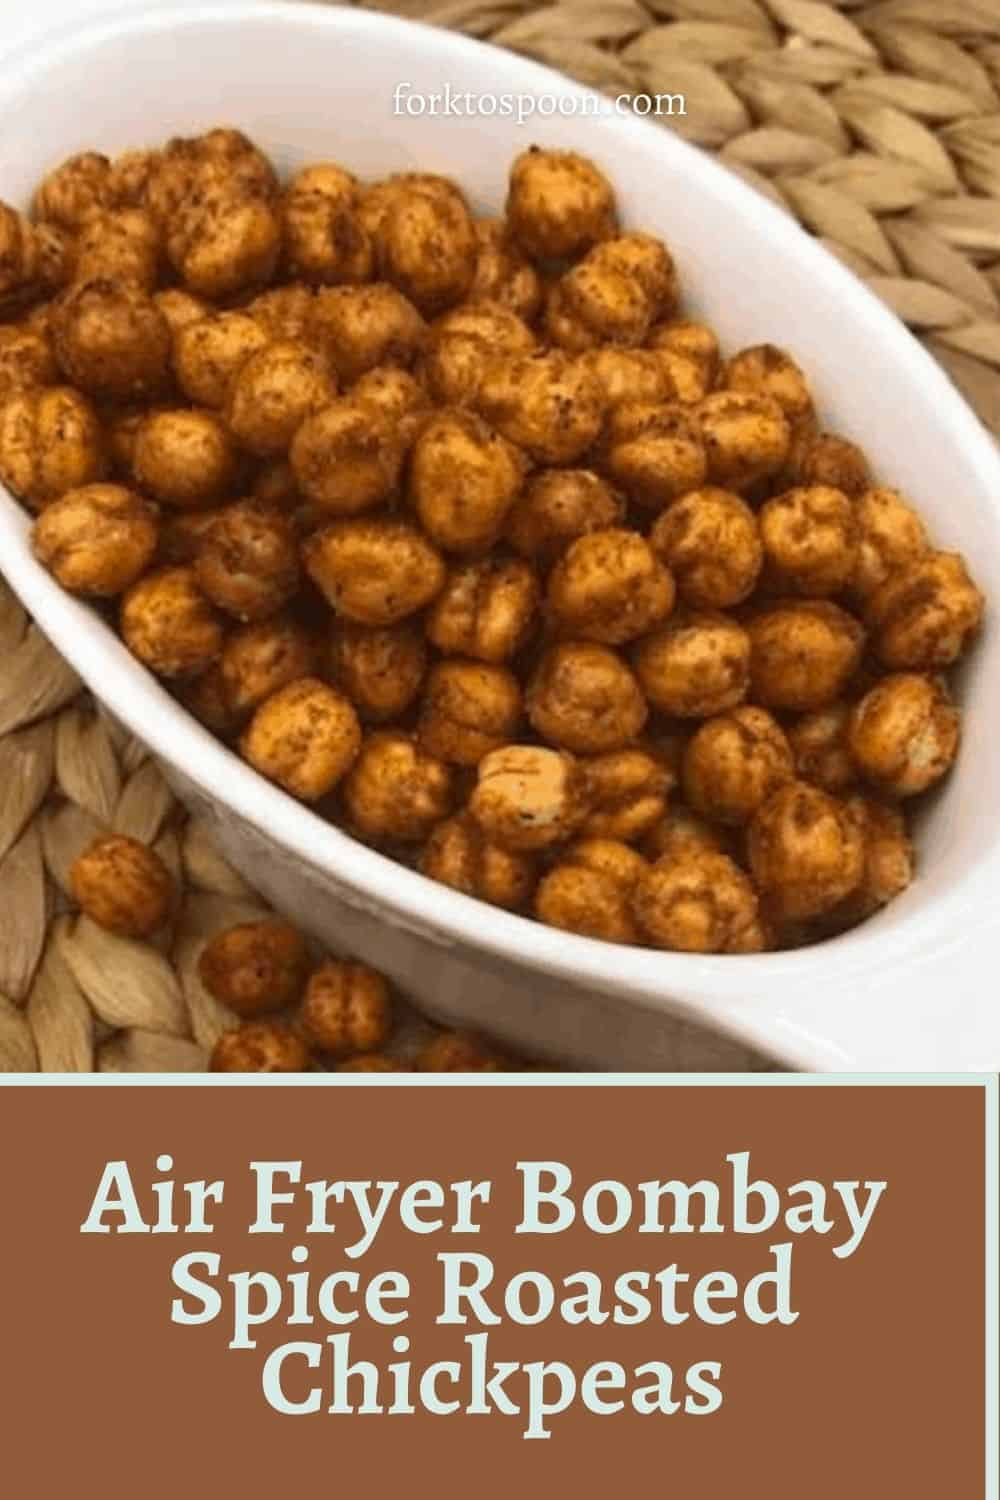 AIR FRYER, ROASTED BOMBAY SPICE ROASTED CHICKPEAS